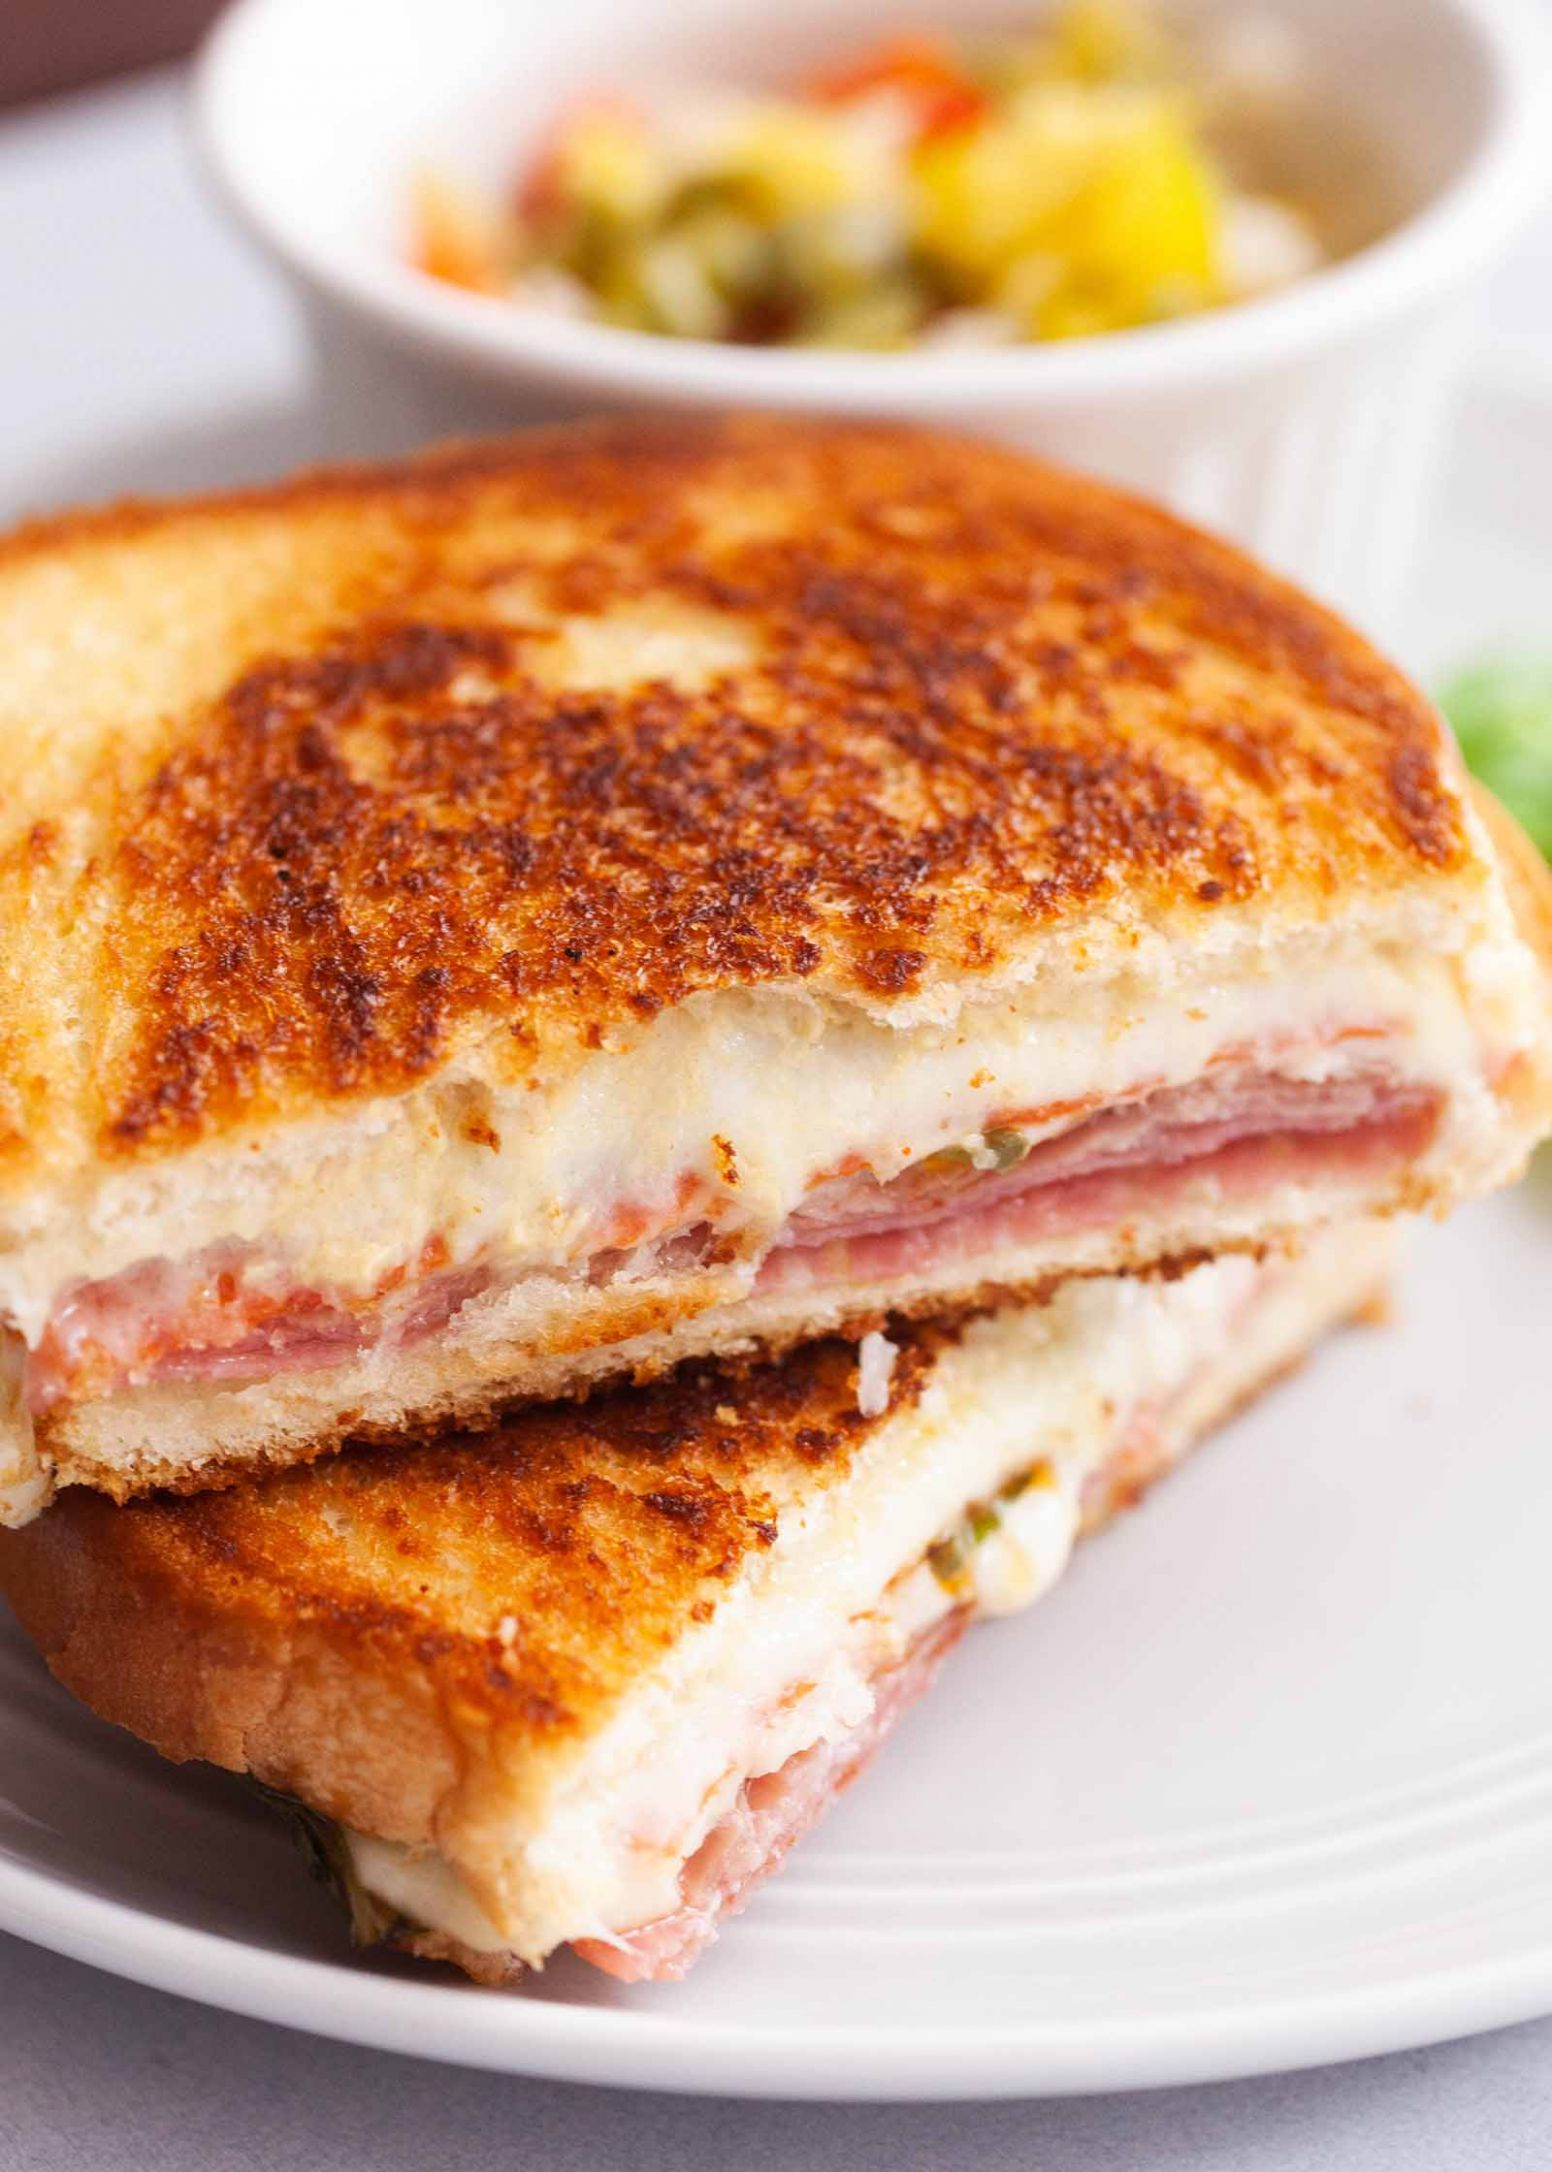 Italian Grilled Cheese Sandwiches - Sandwich Recipes Dinner